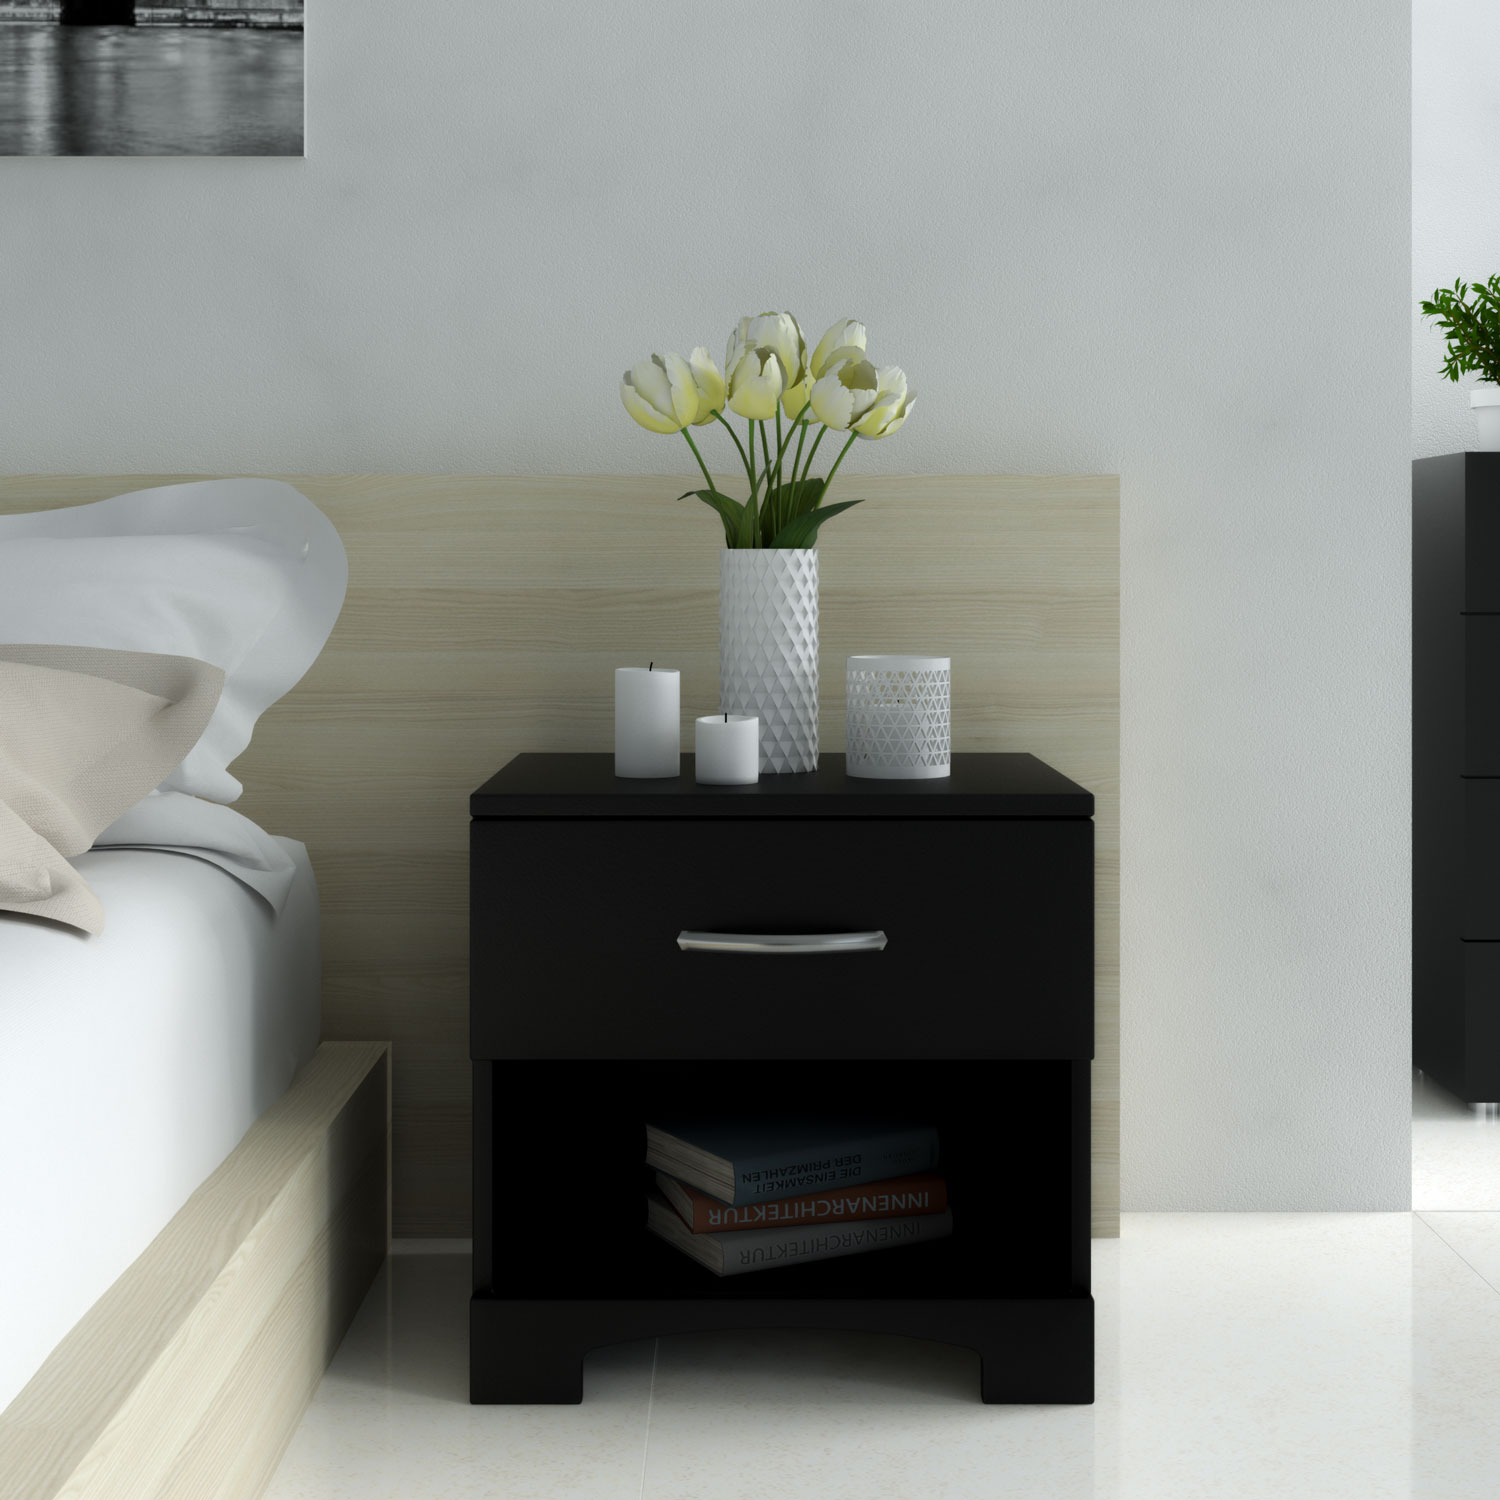 Decorate nightstand using floral